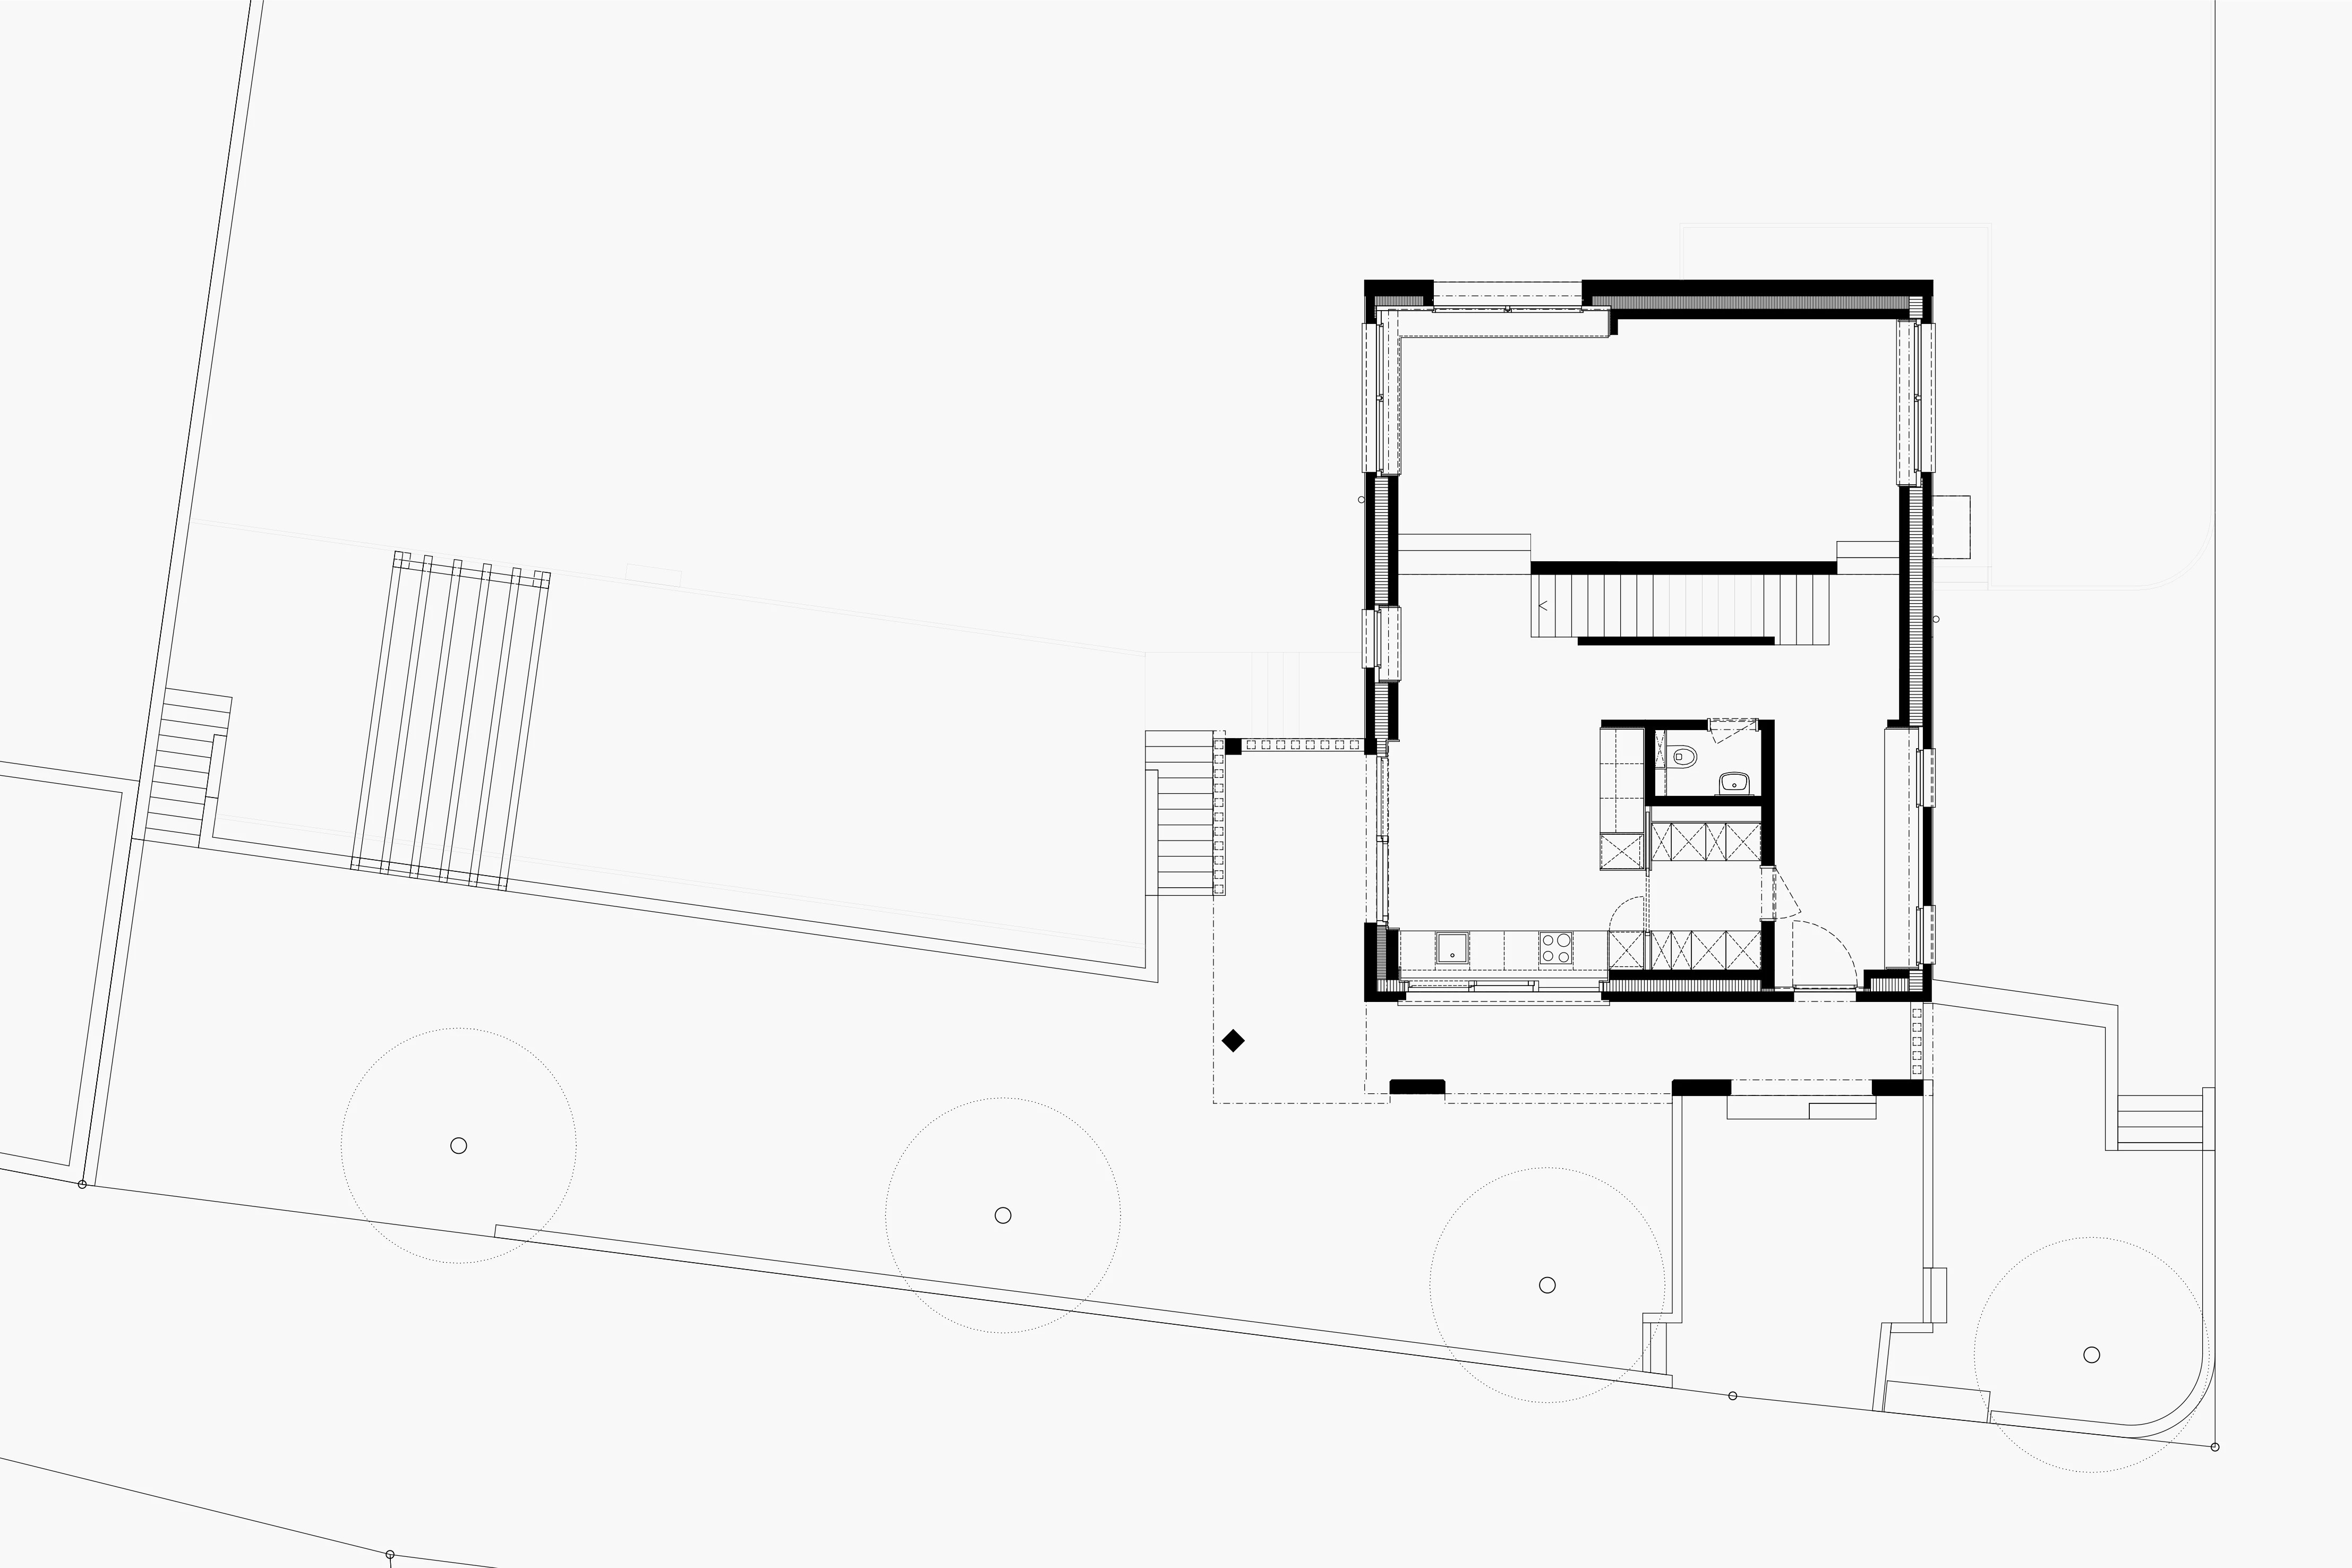 Plans of Single-family Houses · A collection curated by